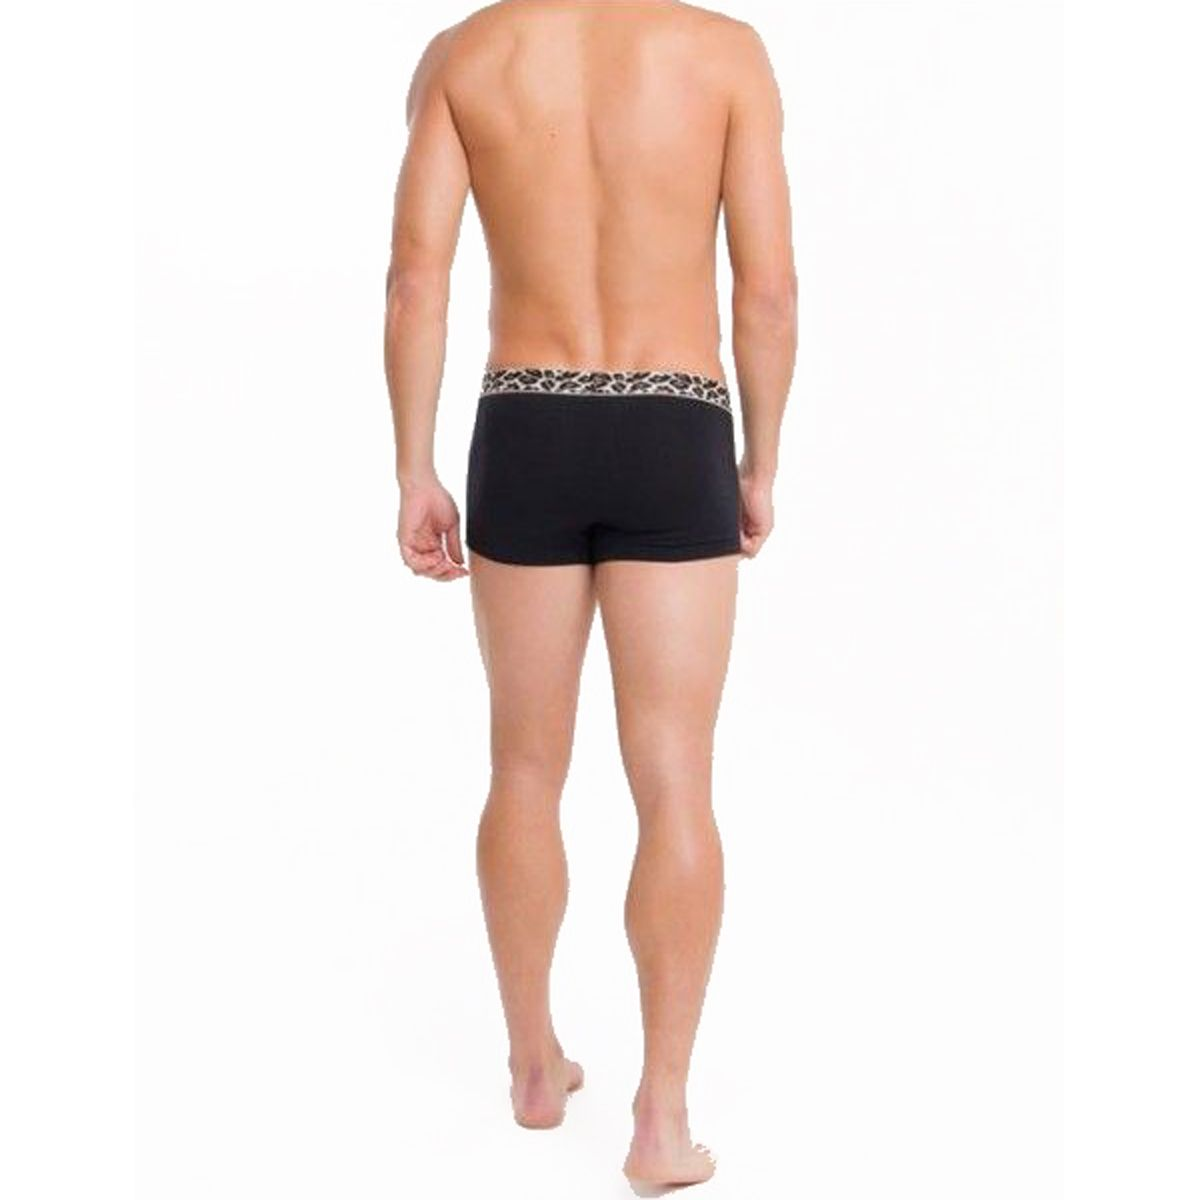 Cueca Calvin Klein Low Rise Trunk Animal Cotton MAS1832